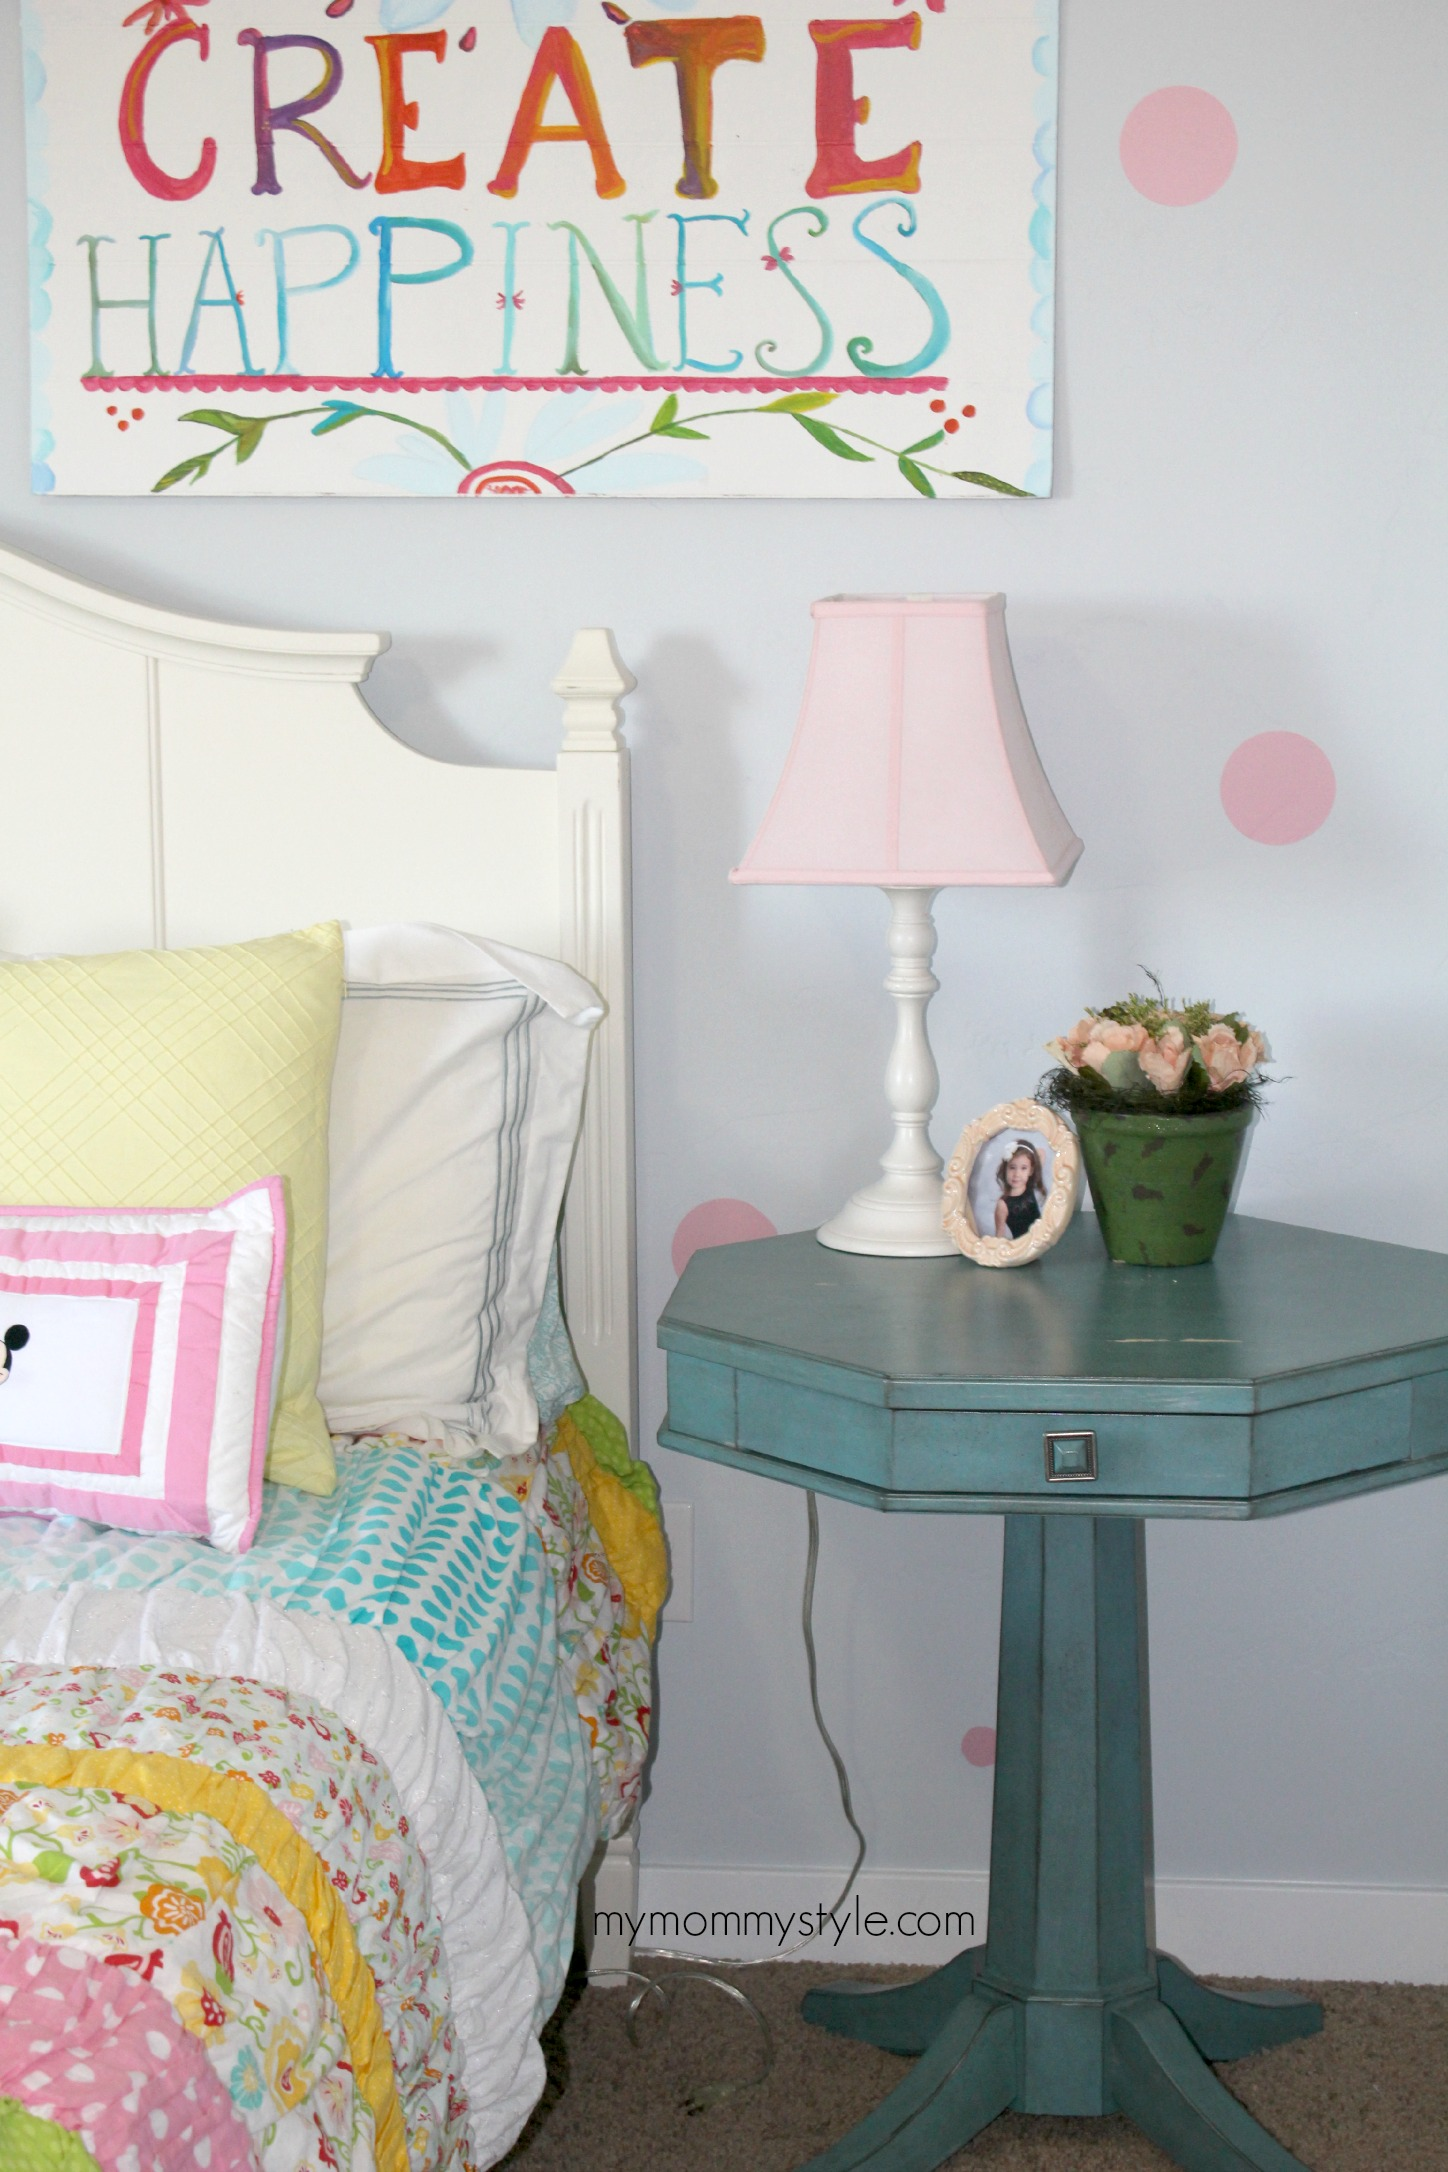 little girls room, create happiness, mymommmystyle.com